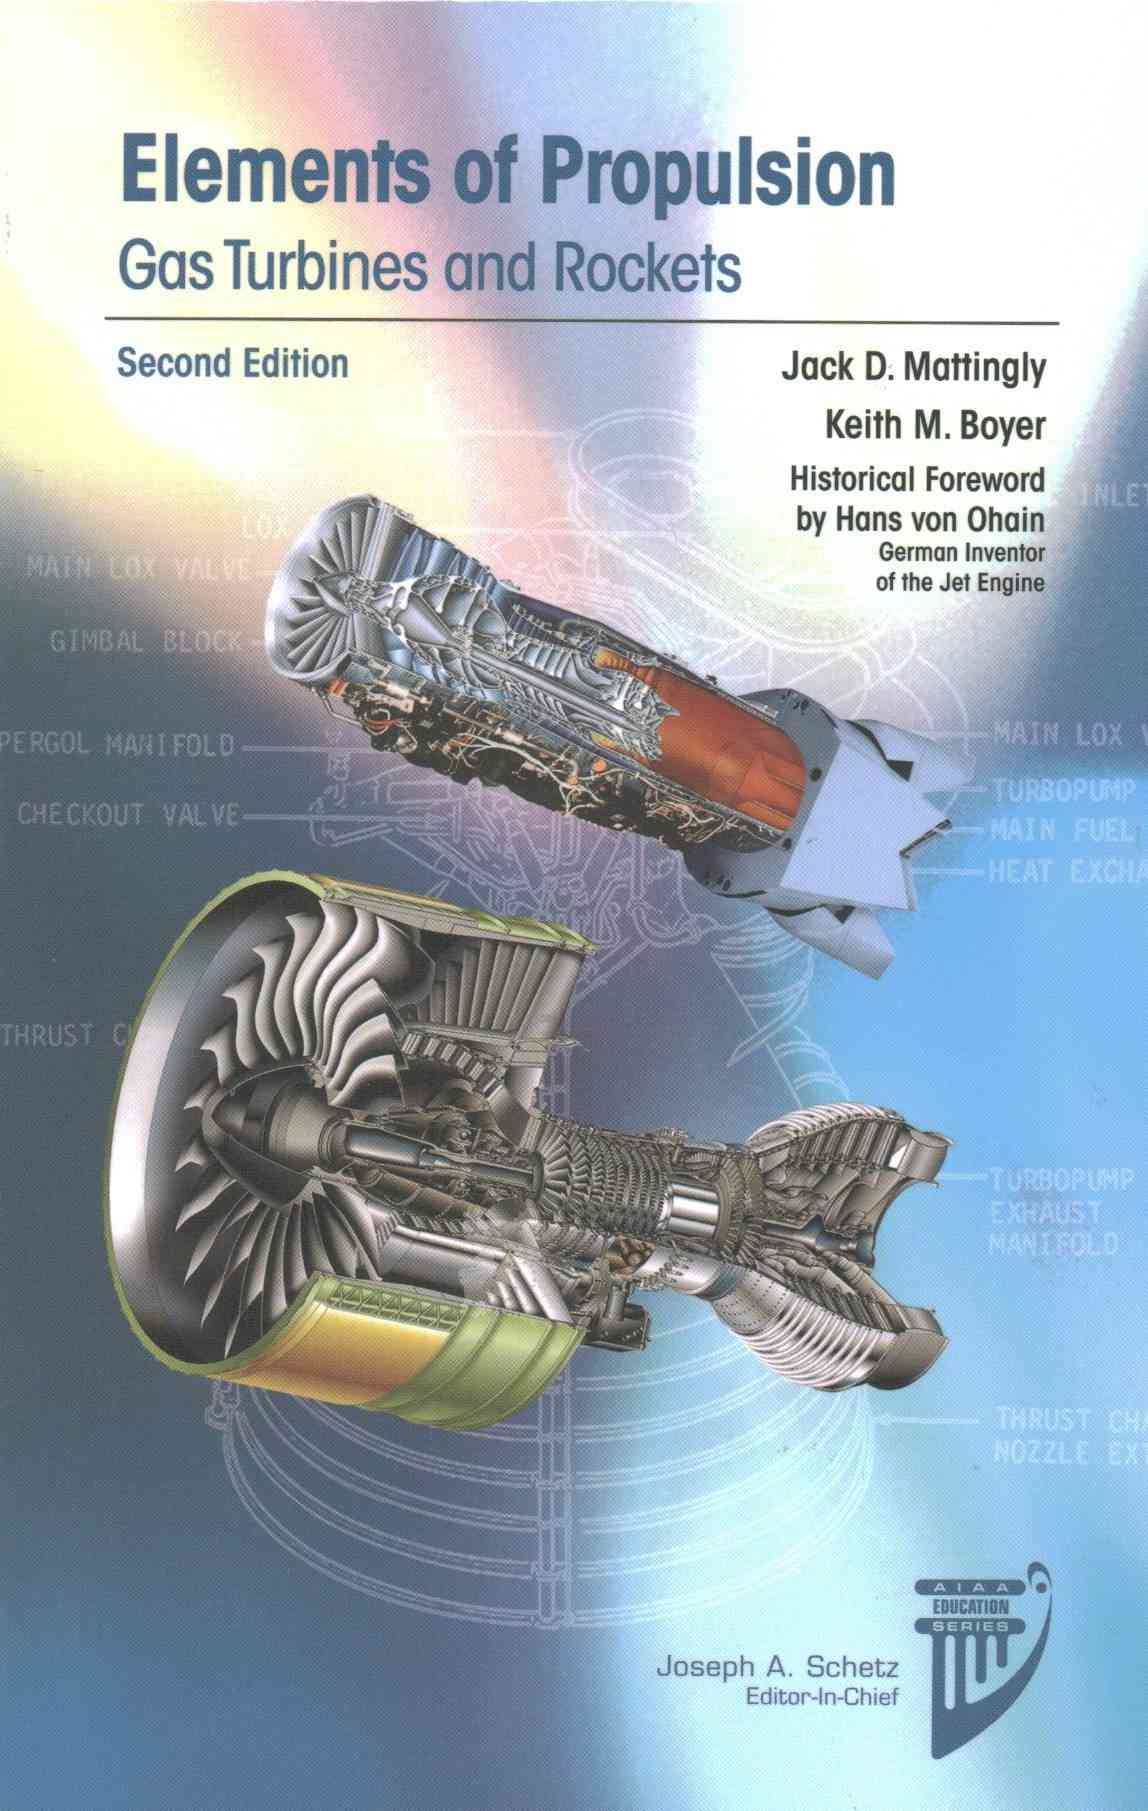 Elements of Propulsion by Jack D. Mattingly